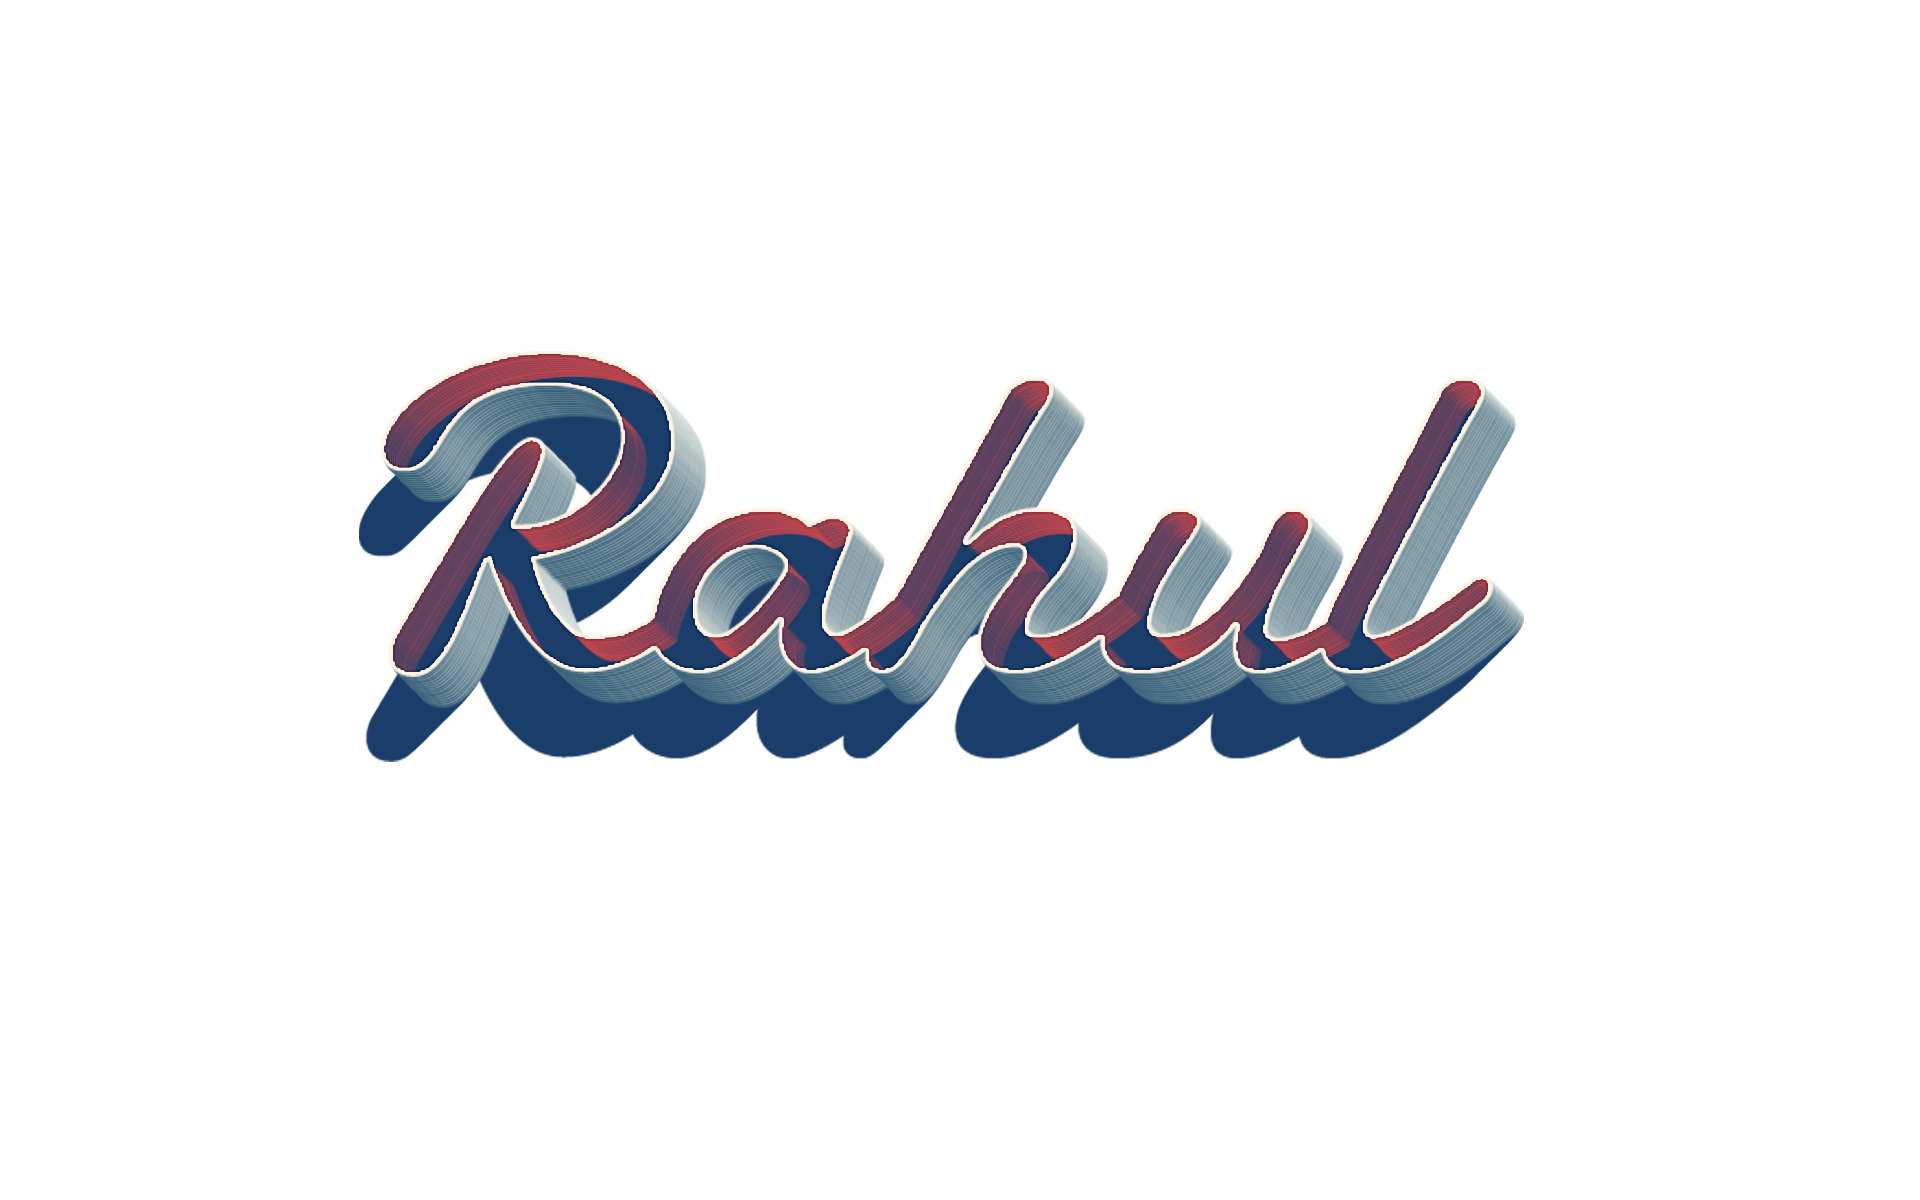 Png effect name. Rahul ready made logo